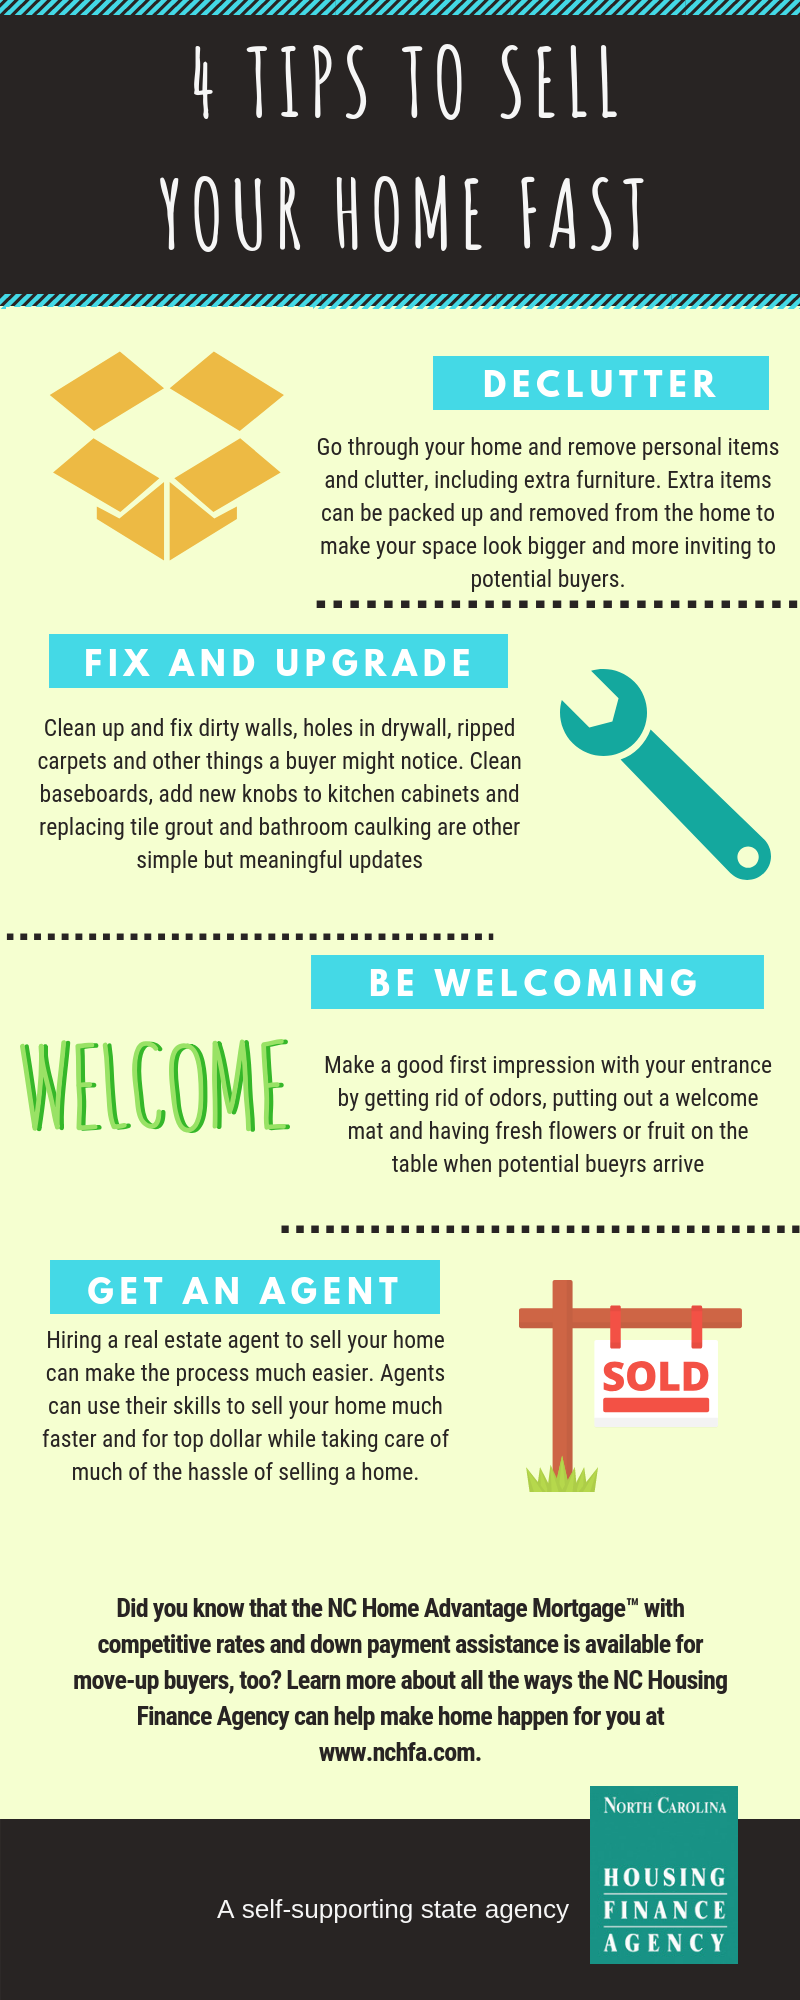 4 Tips To Sell Your Home Fast So You Can Move Up Sell Your House Fast Things To Sell Tips